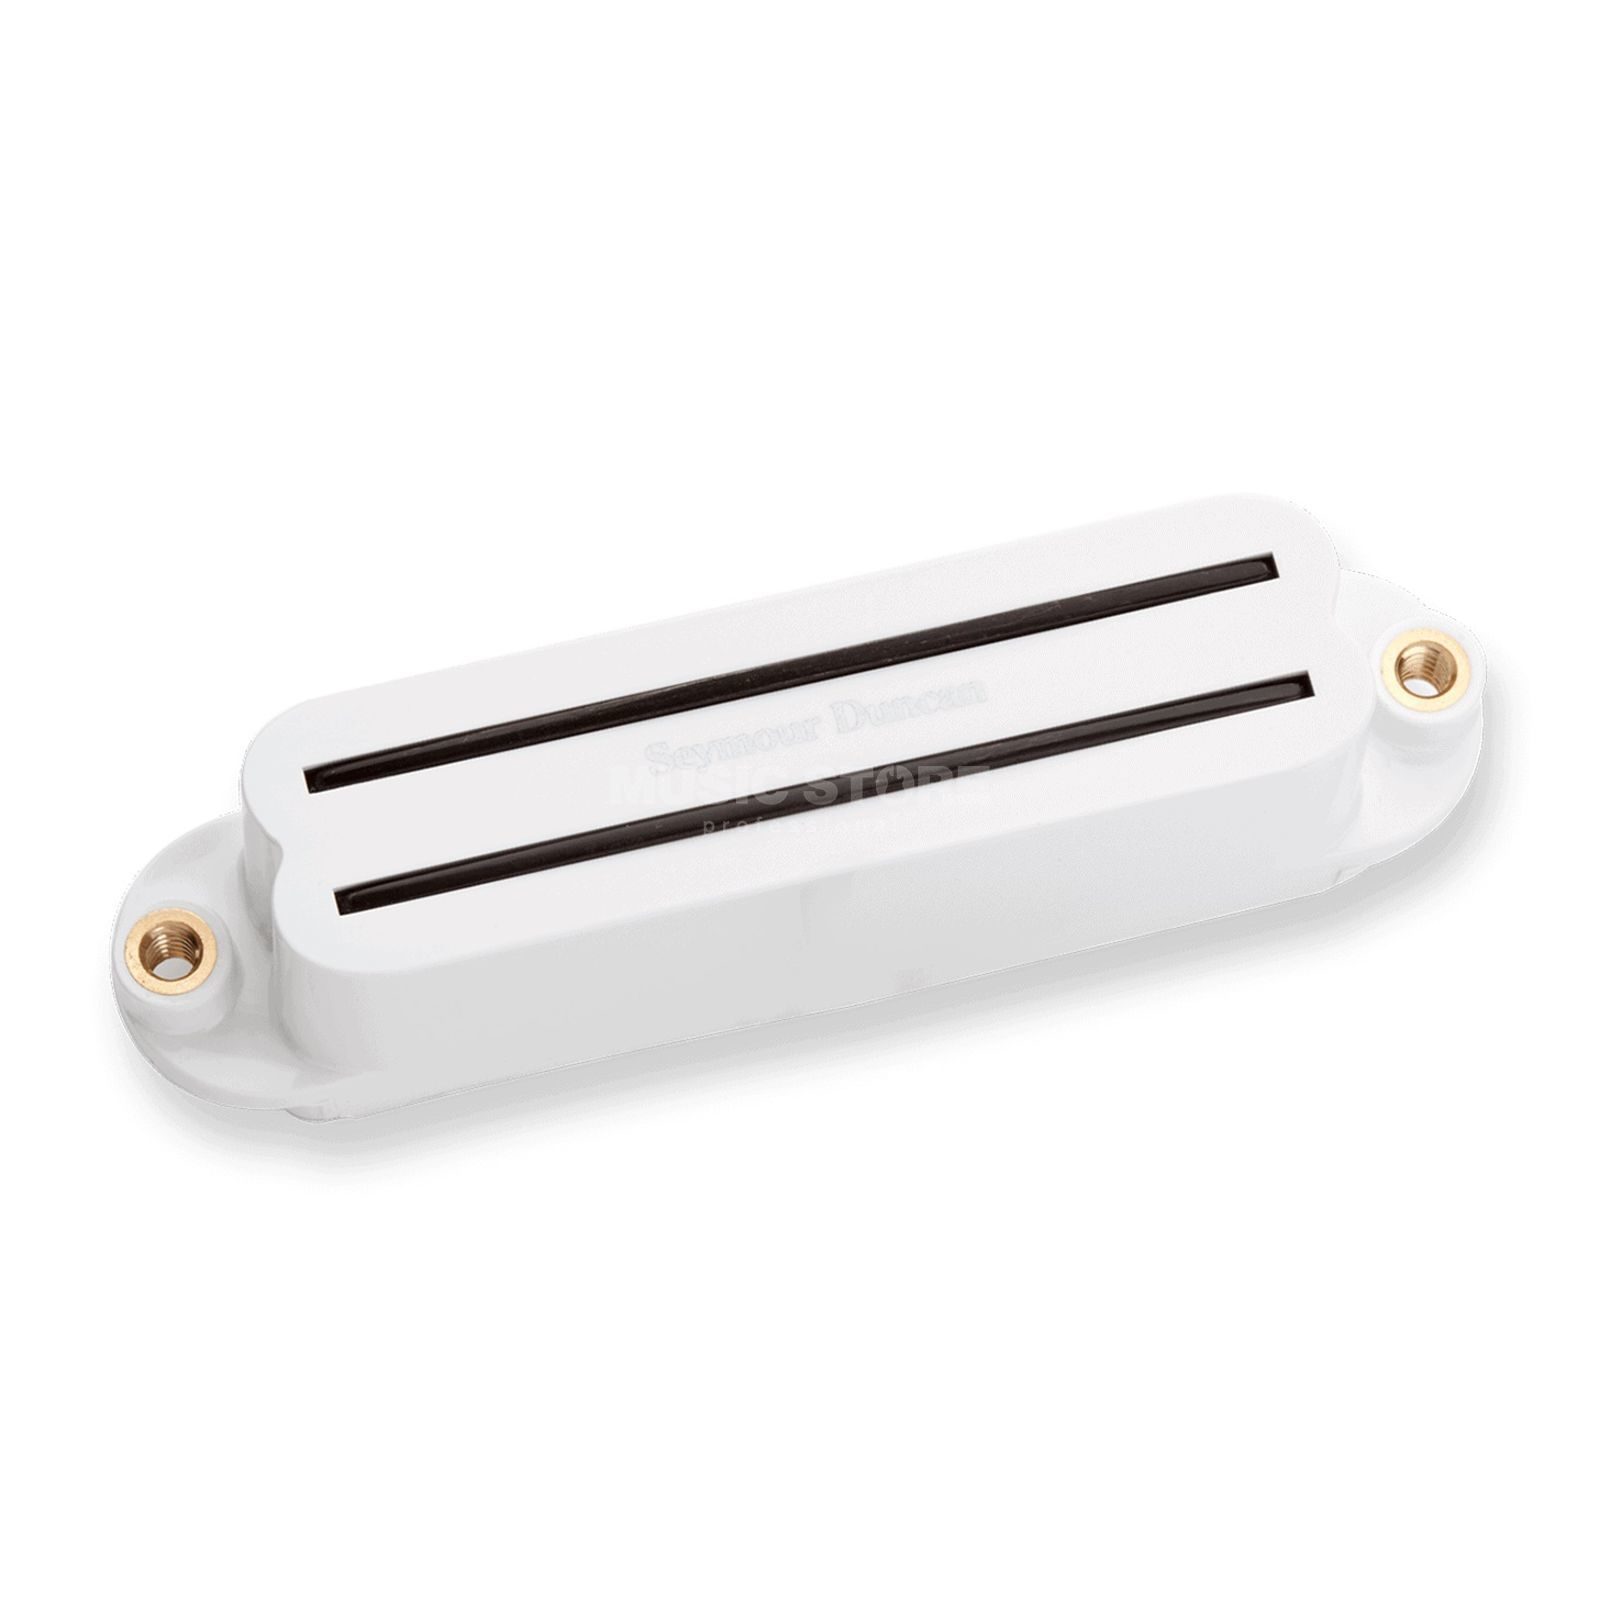 Seymour Duncan SHR-1B WHT Hot Rails Strat White Bridge Produktbild